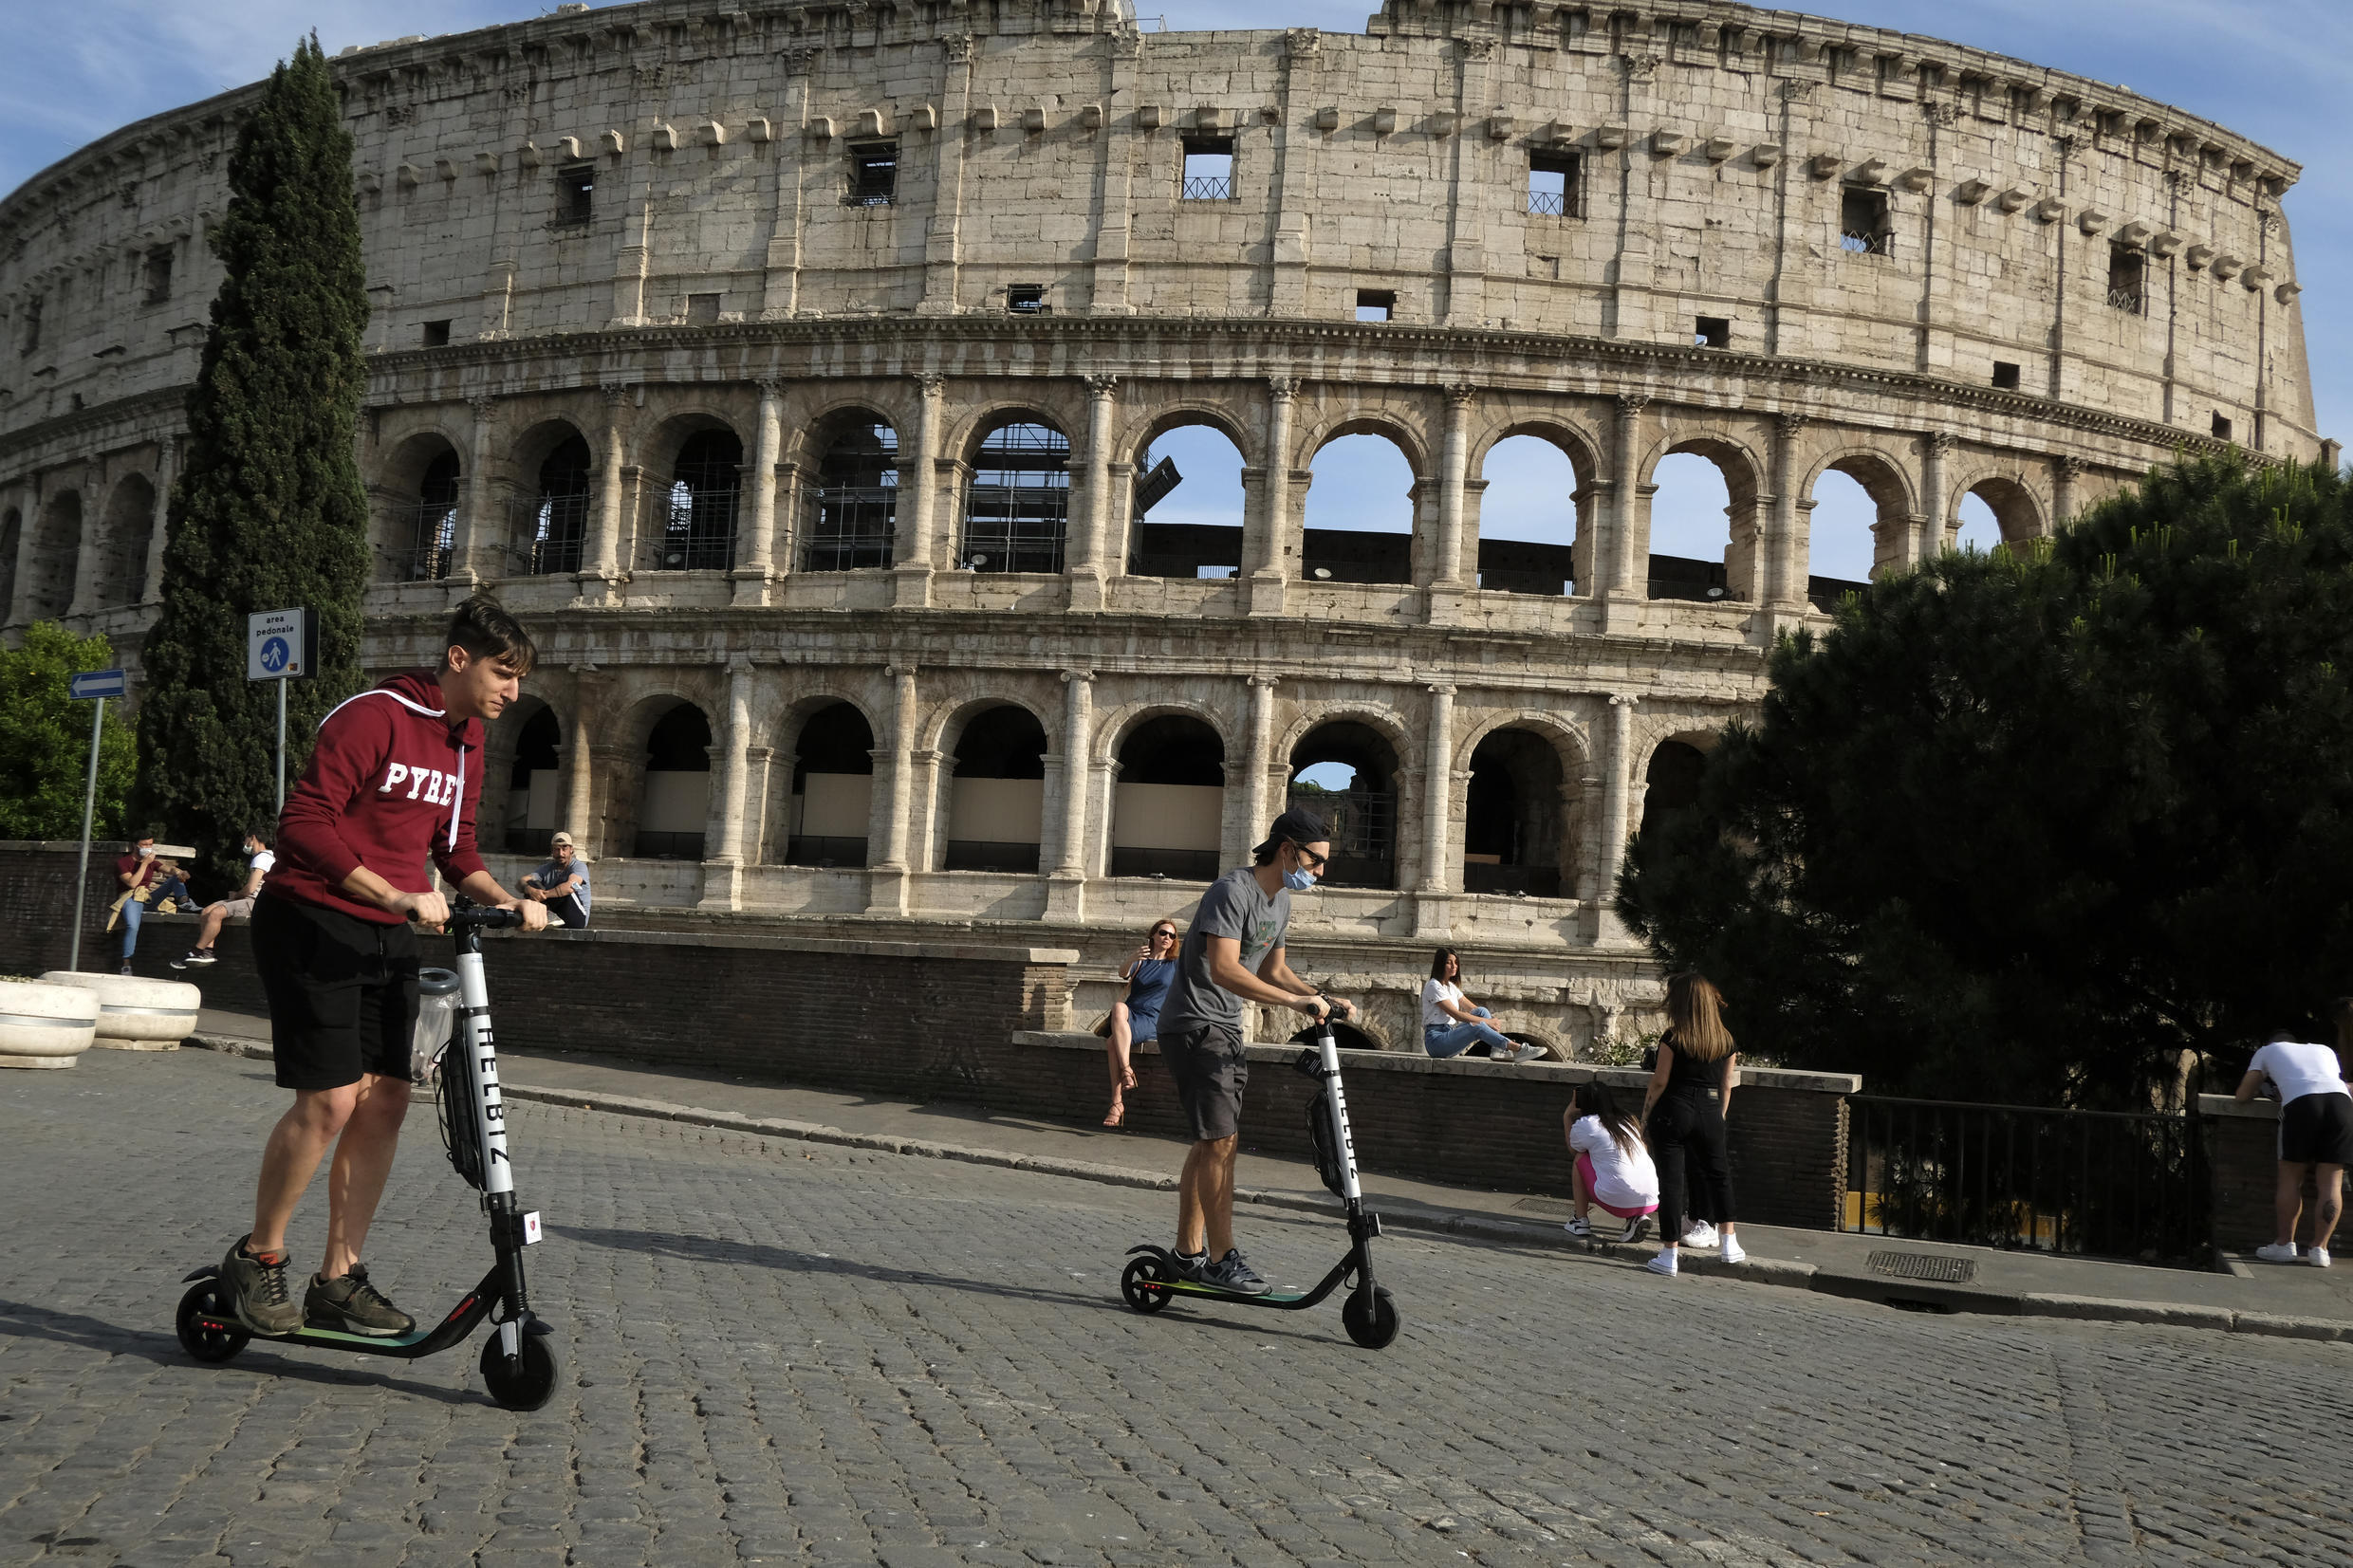 Italy is expected to receive around 172 billion euros from an EU fund to help revitalise its economy